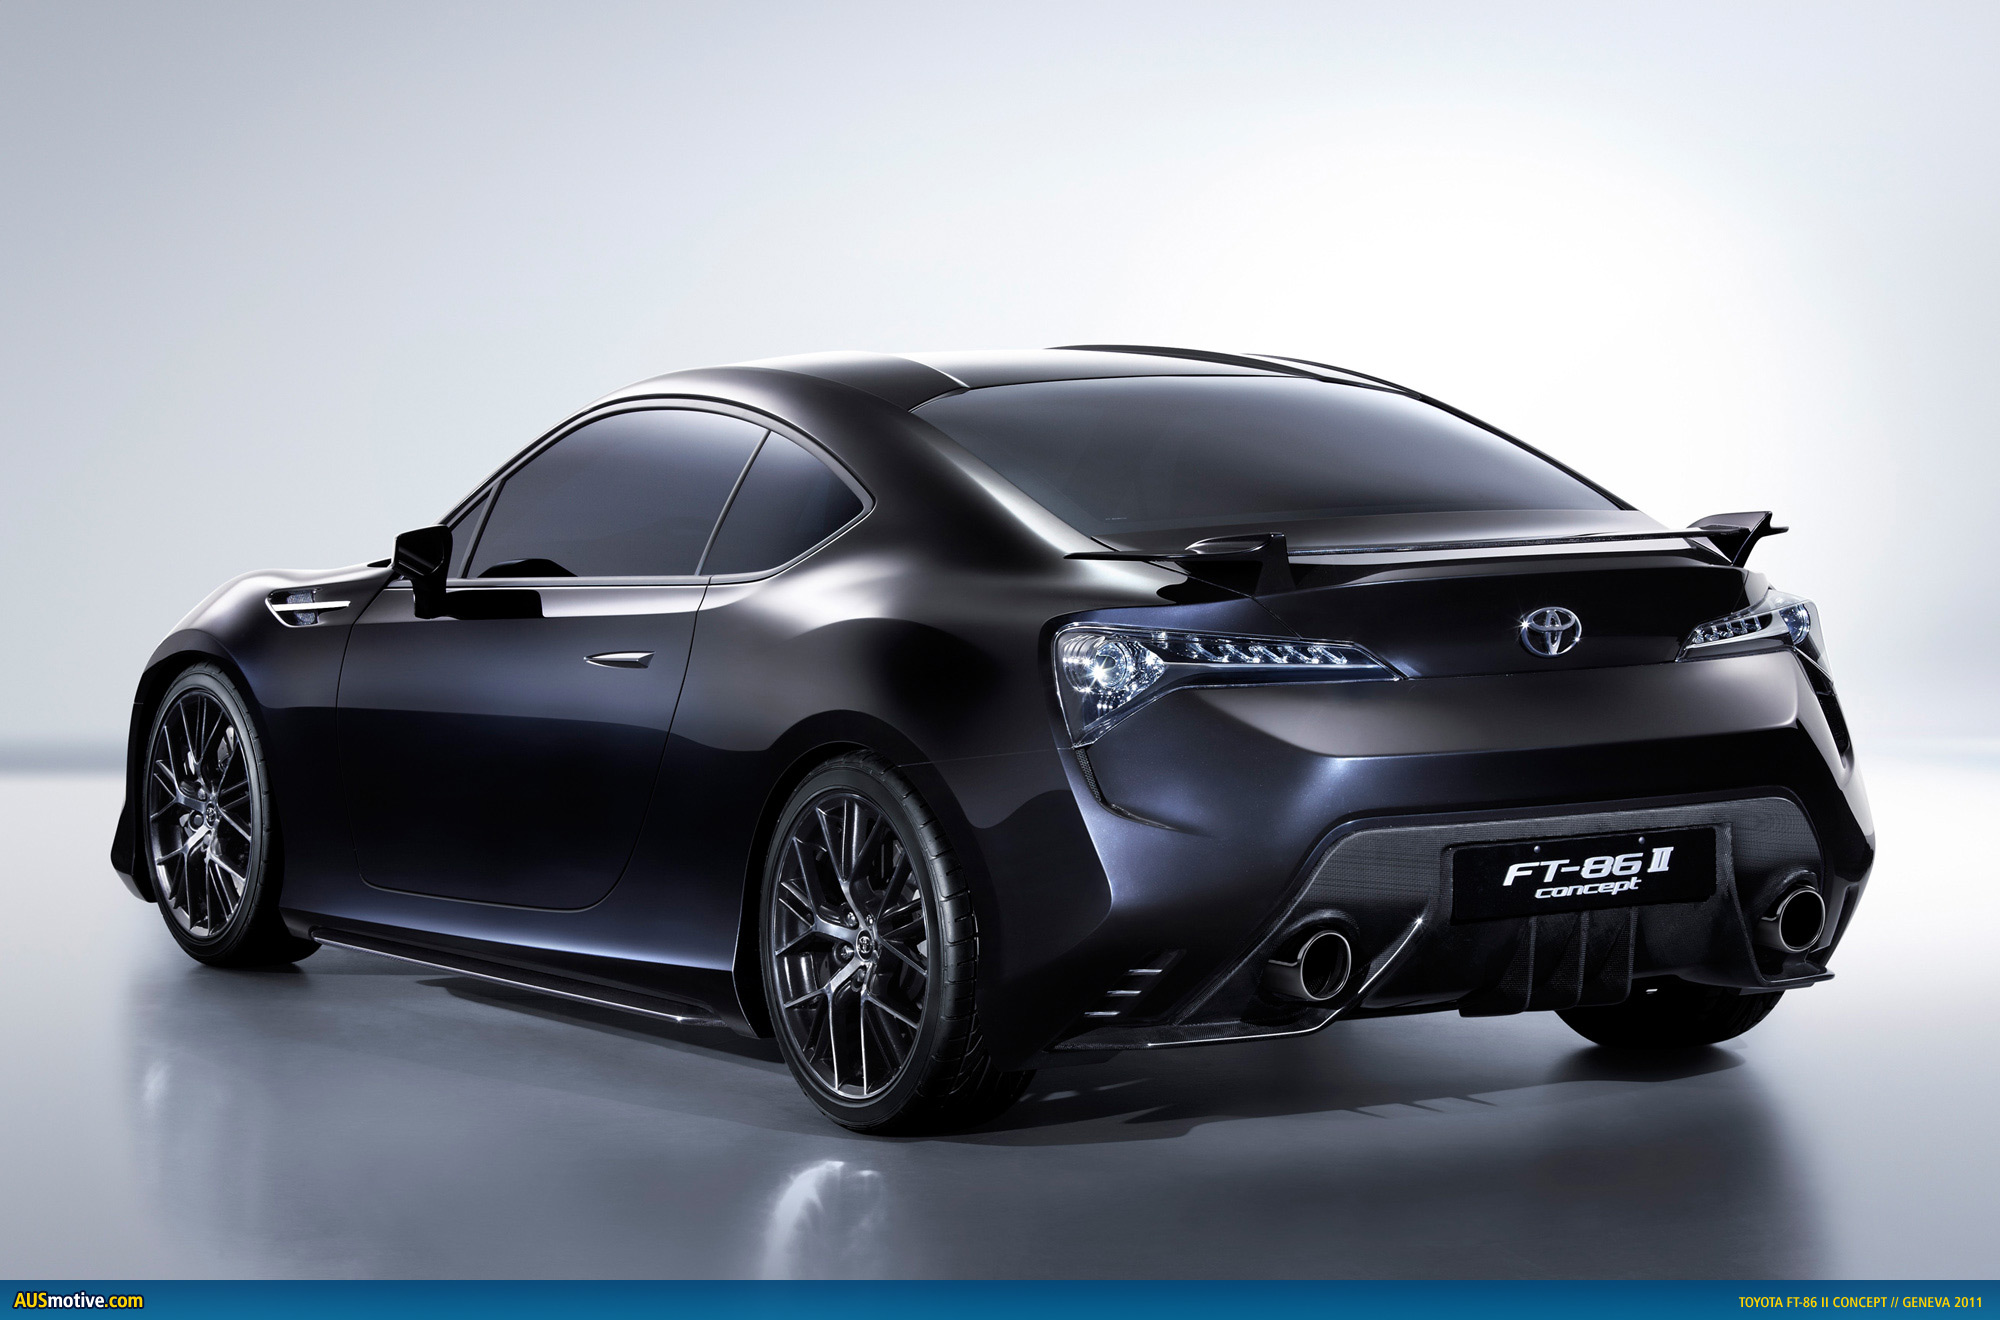 FT-86 II Concept – Toyota's passion for sports car driving reborn